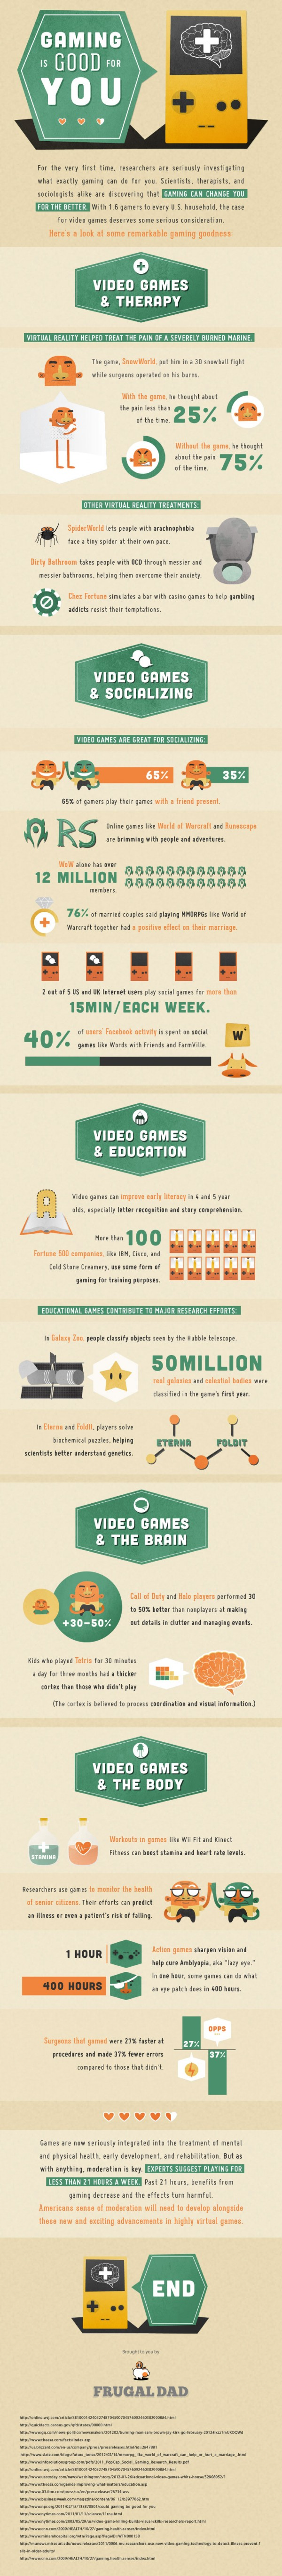 infographic-games2